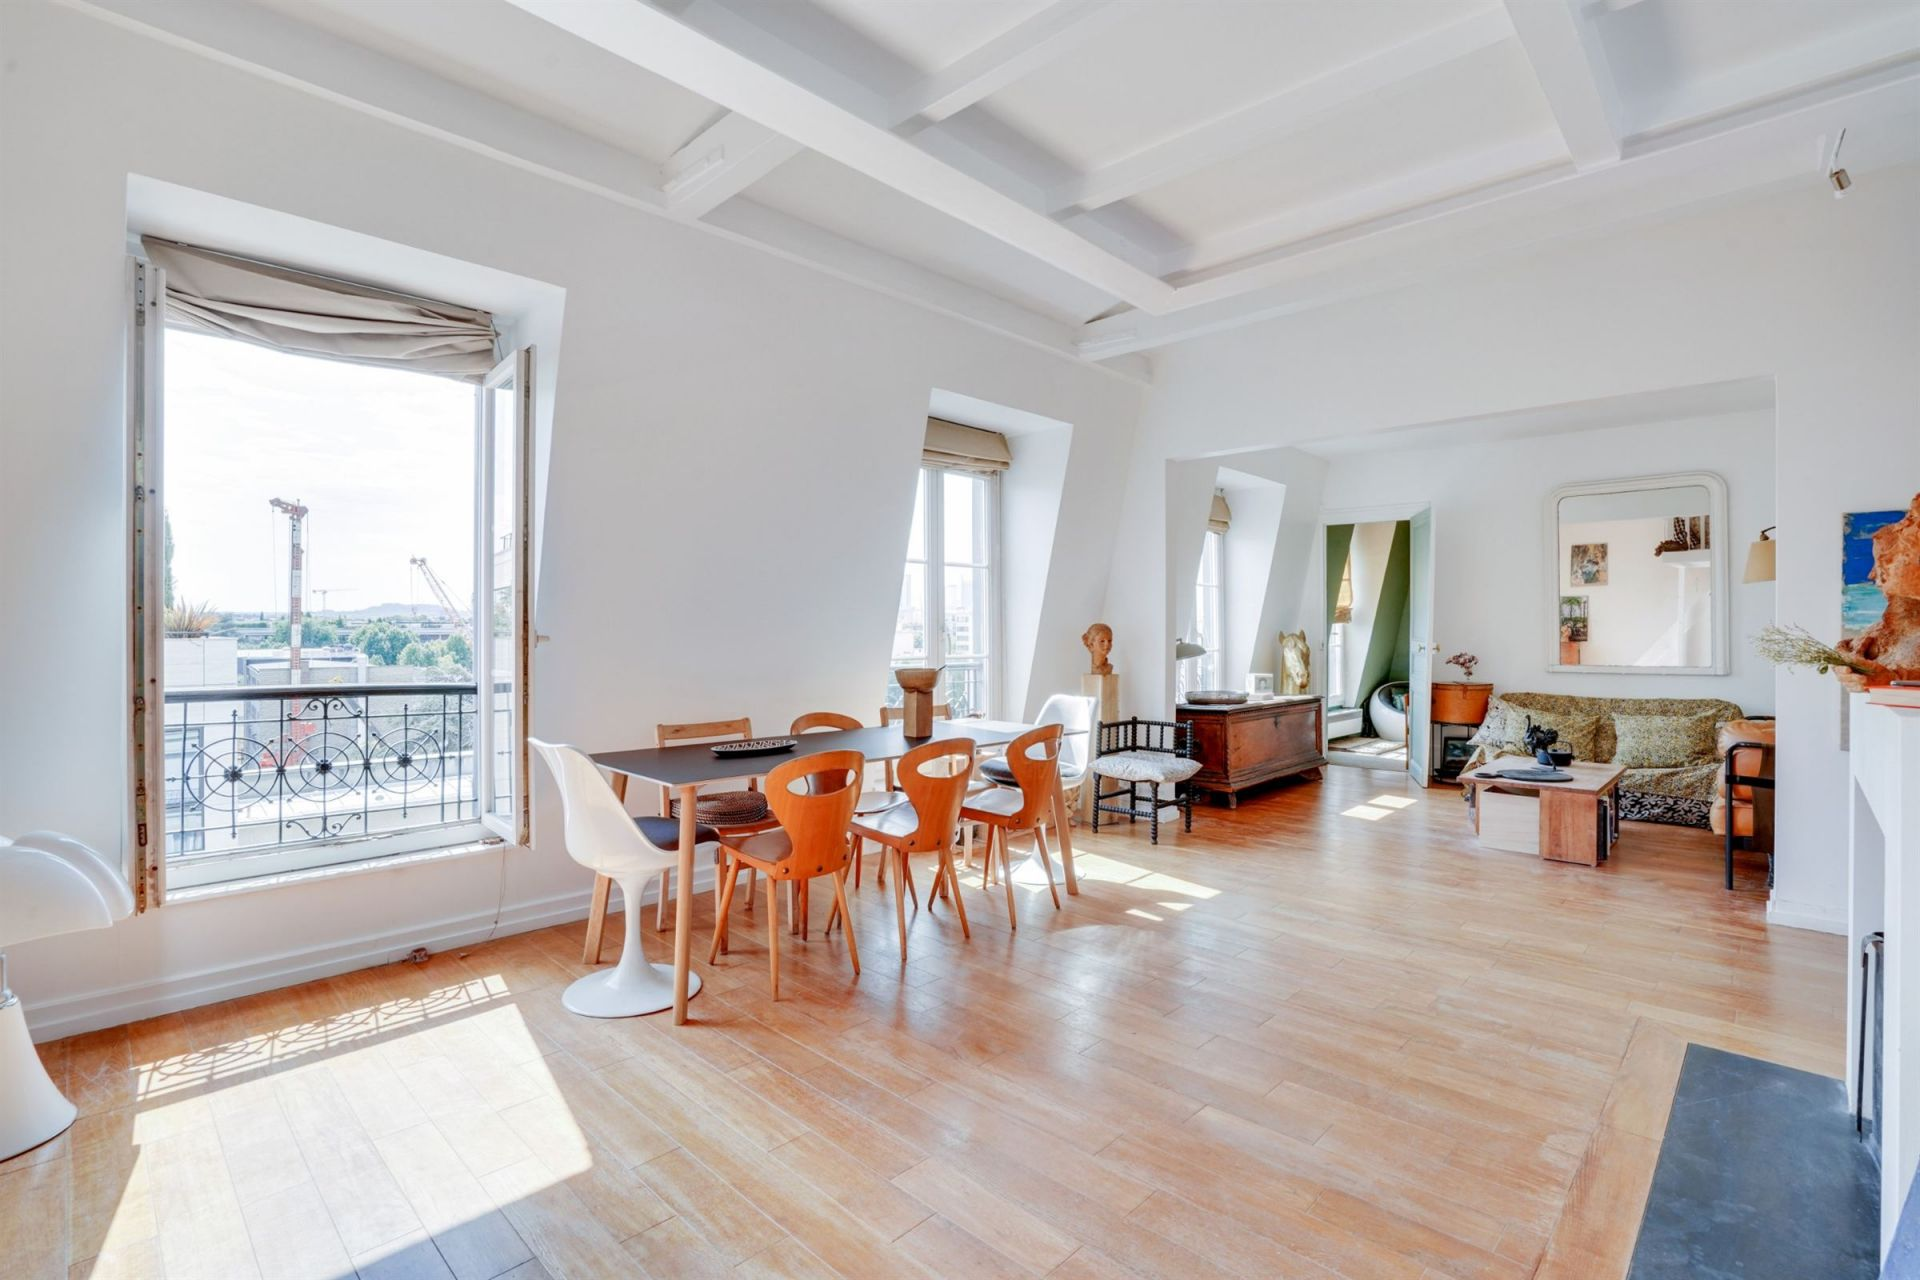 Sale Luxury apartment 5 rooms 3 bedrooms Neuilly Sur Seine (92200)